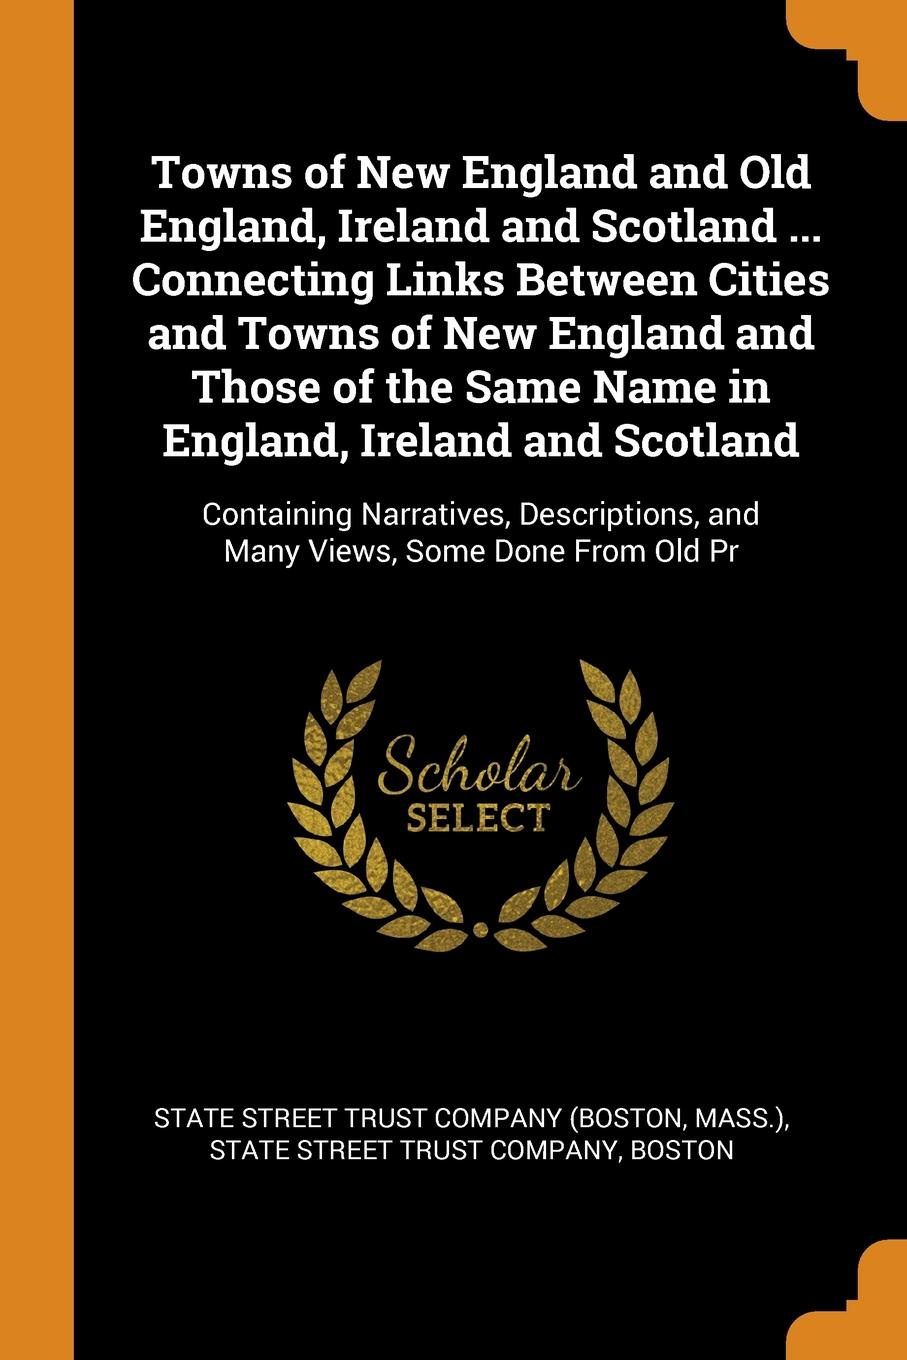 все цены на Towns of New England and Old England, Ireland and Scotland ... Connecting Links Between Cities and Towns of New England and Those of the Same Name in England, Ireland and Scotland. Containing Narratives, Descriptions, and Many Views, Some Done Fro... онлайн